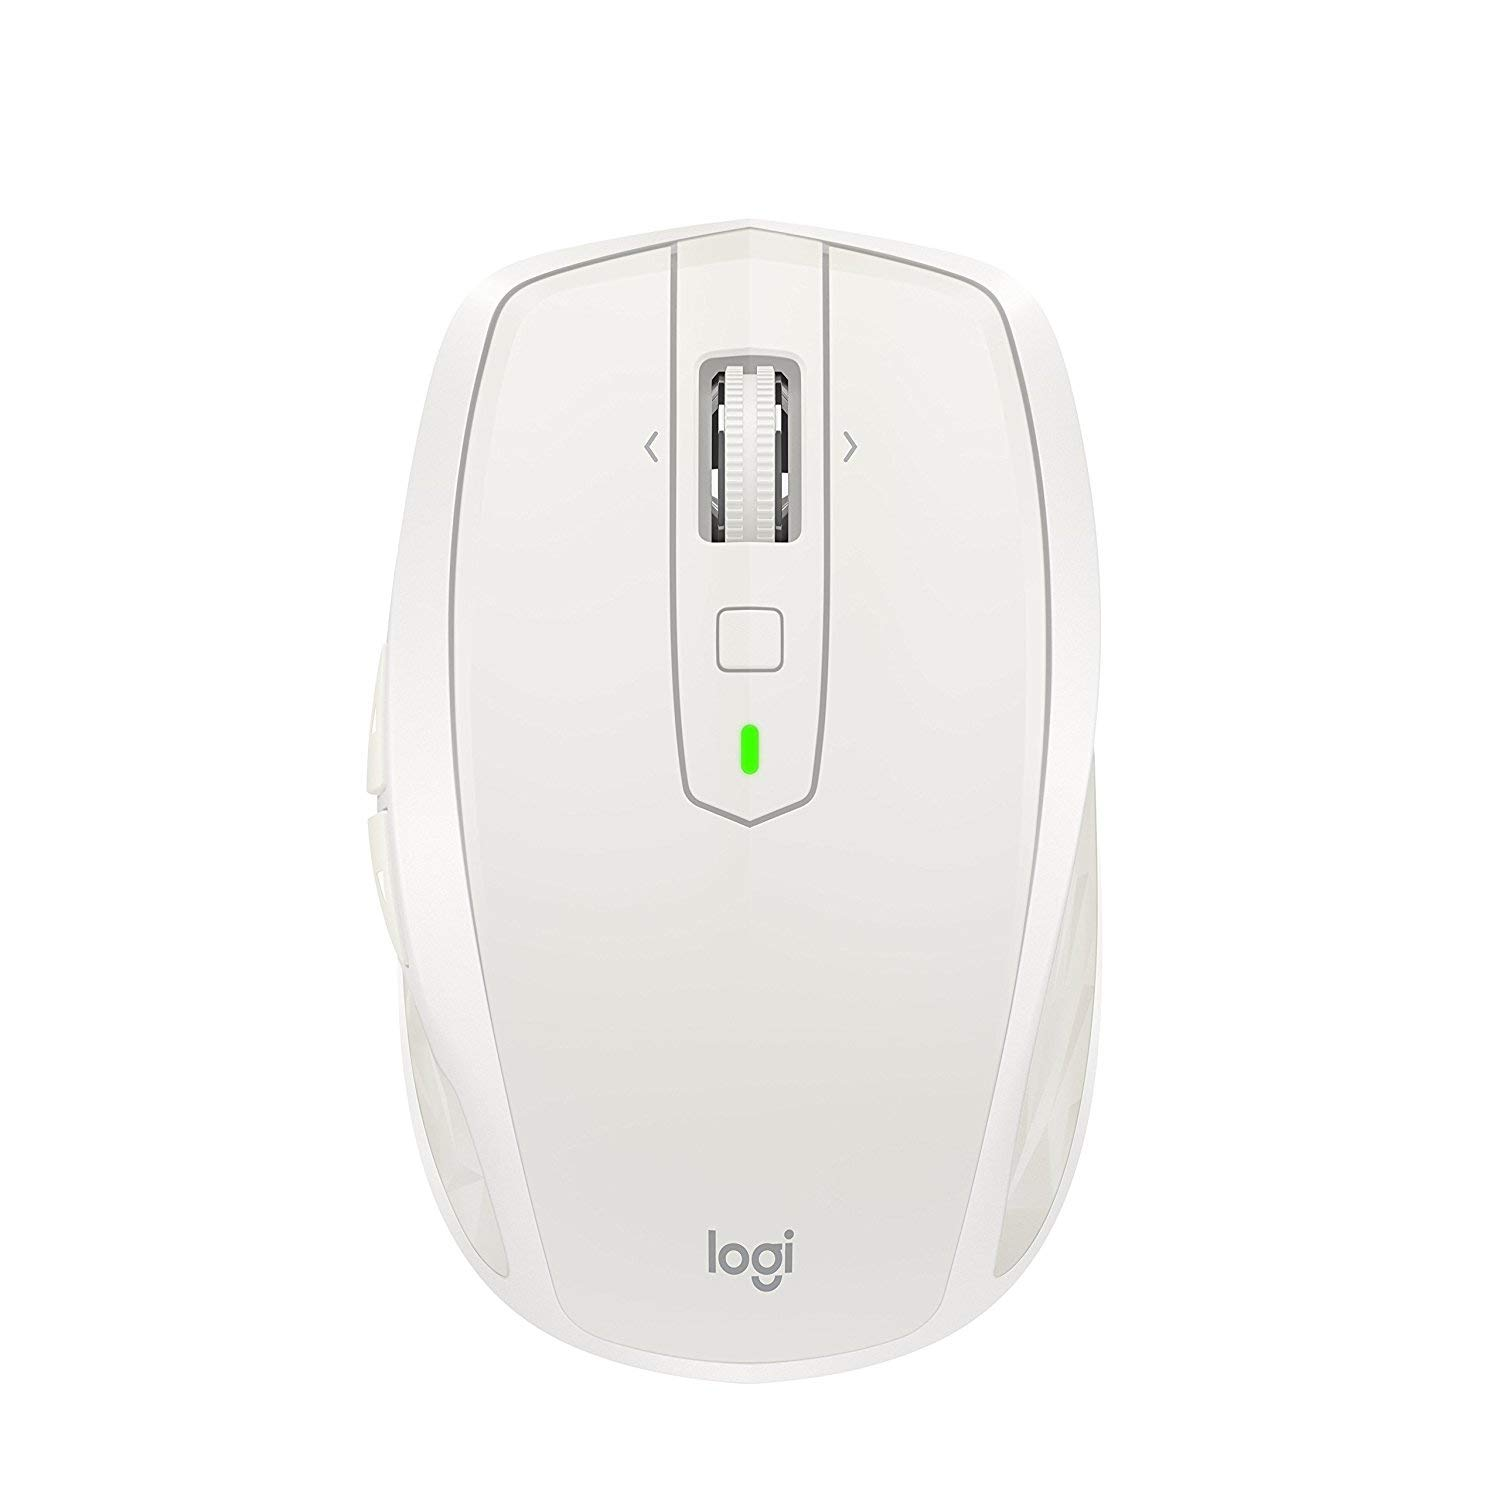 d43cb7e6d97 Logitech MX Anywhere 2S Wireless Mouse – Use On Any Surface, Hyper-Fast  Scrolling, Rechargeable, Control up to 3 Apple Mac and Windows Computers  and laptops ...